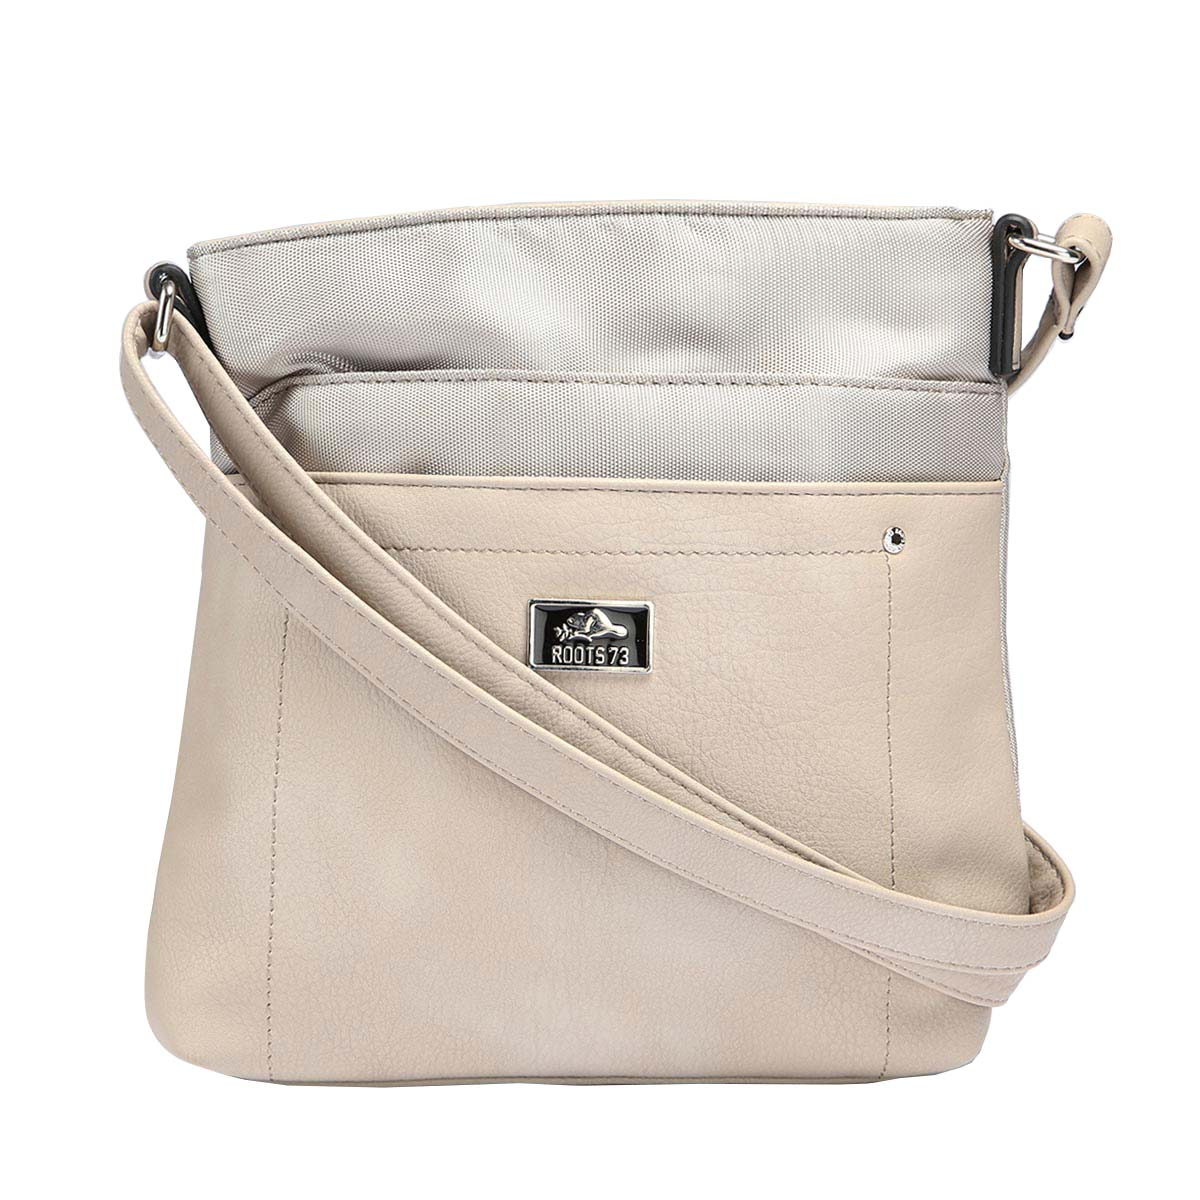 Lds Roots73 tpe north/south crossbody